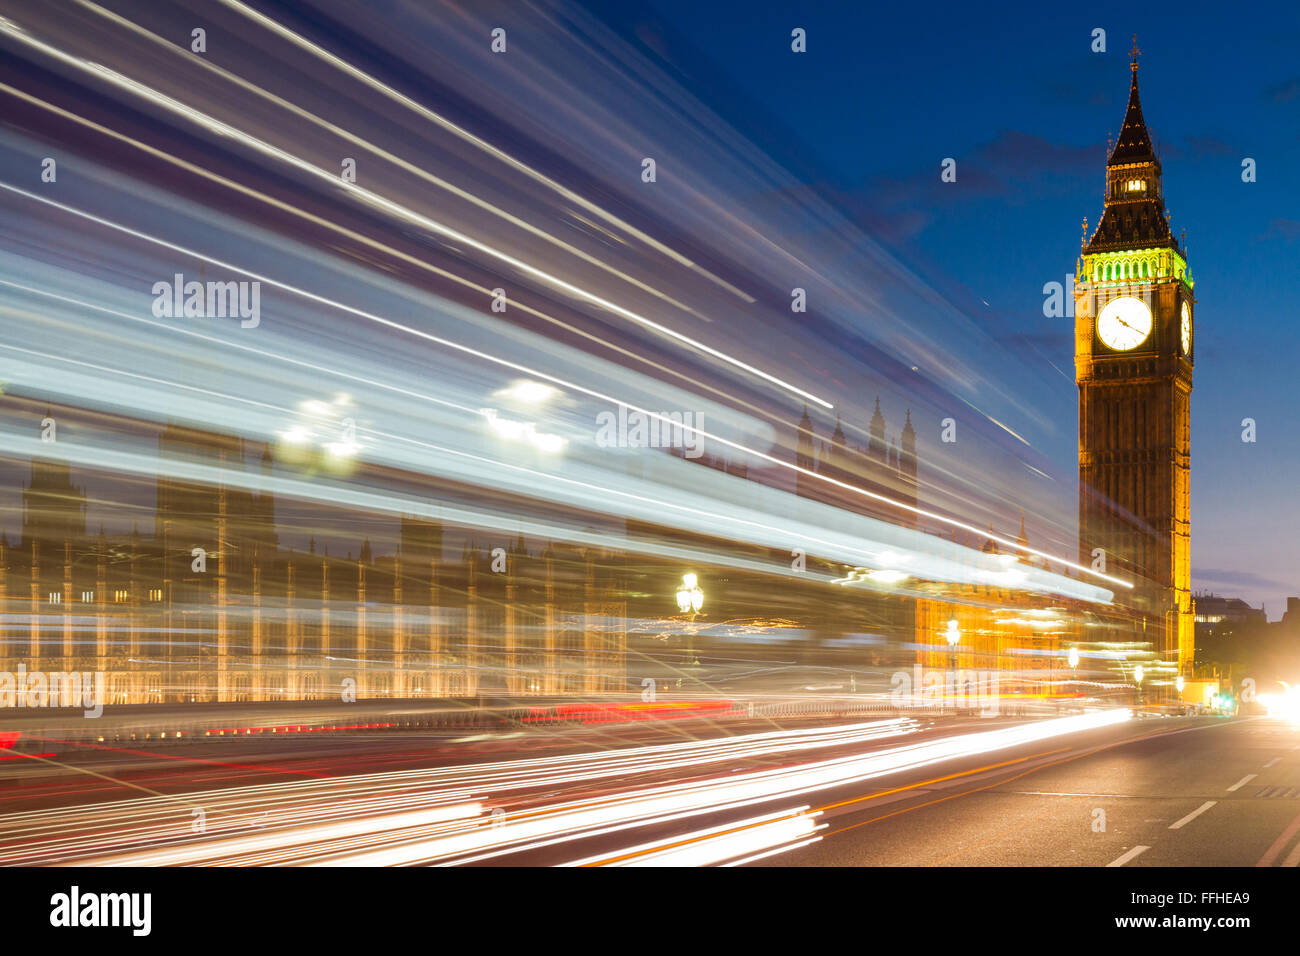 Traffic lines in front of Big Ben, London, England - Stock Image